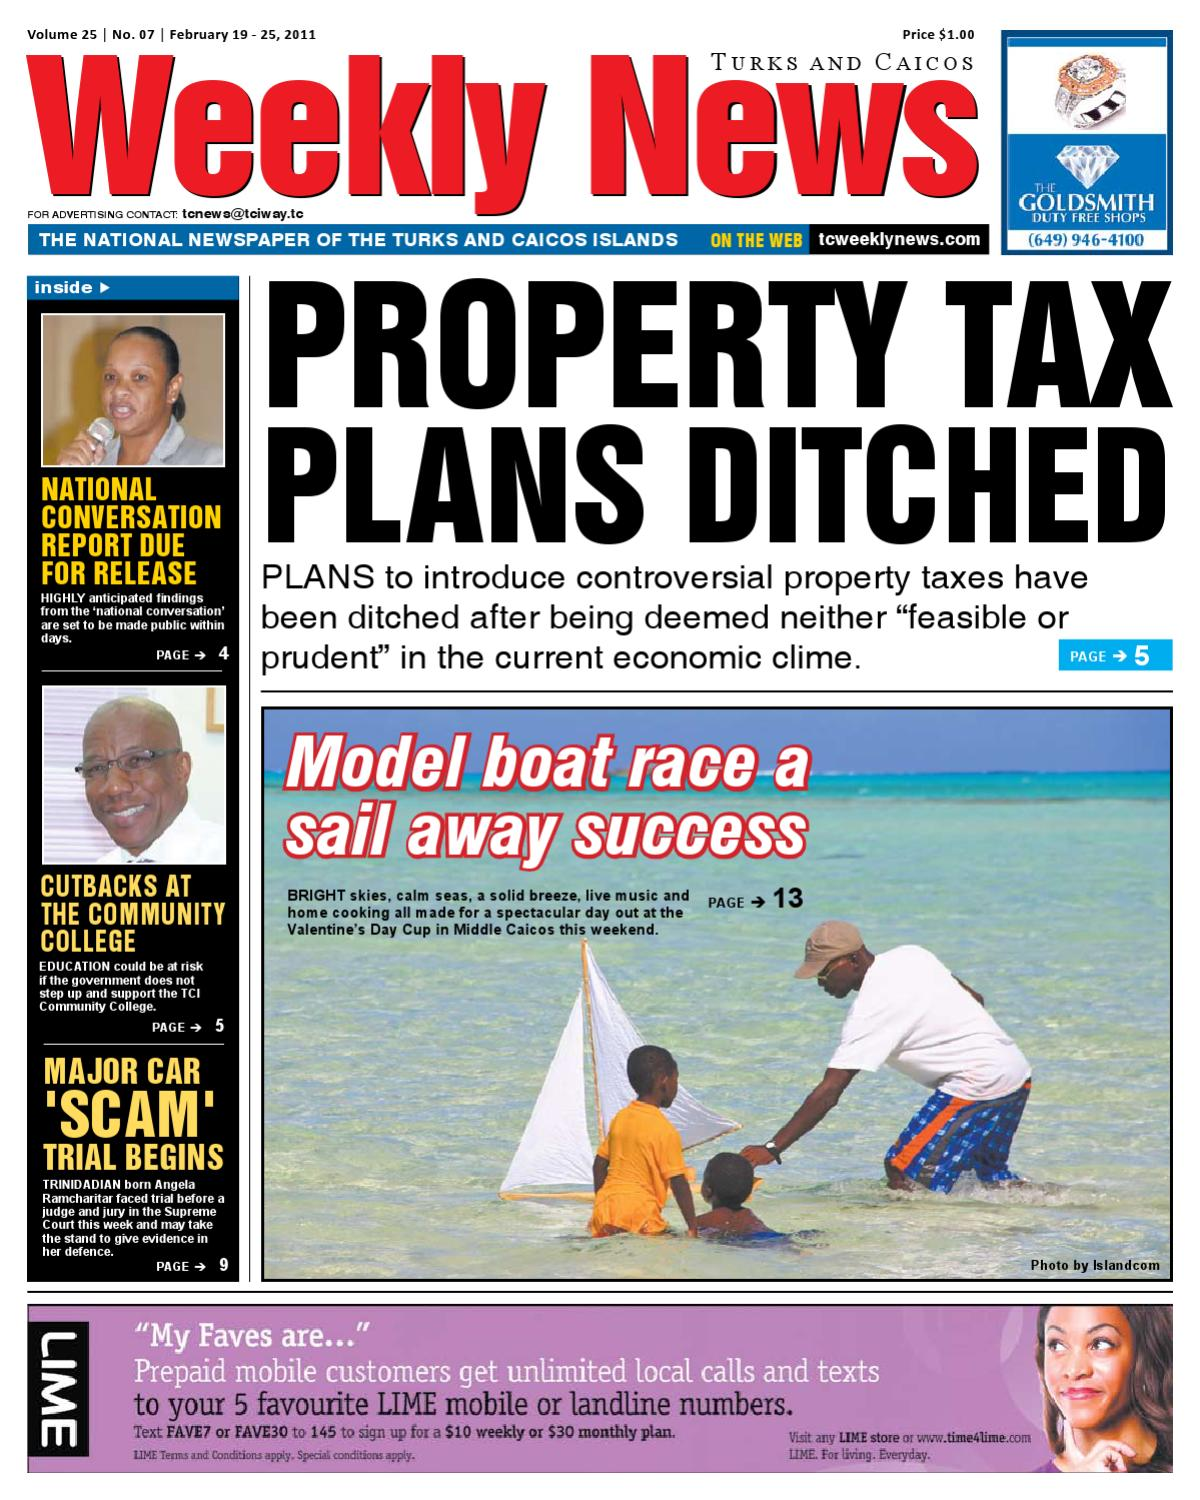 Turks and caicos weekly news by tc weekly news issuu malvernweather